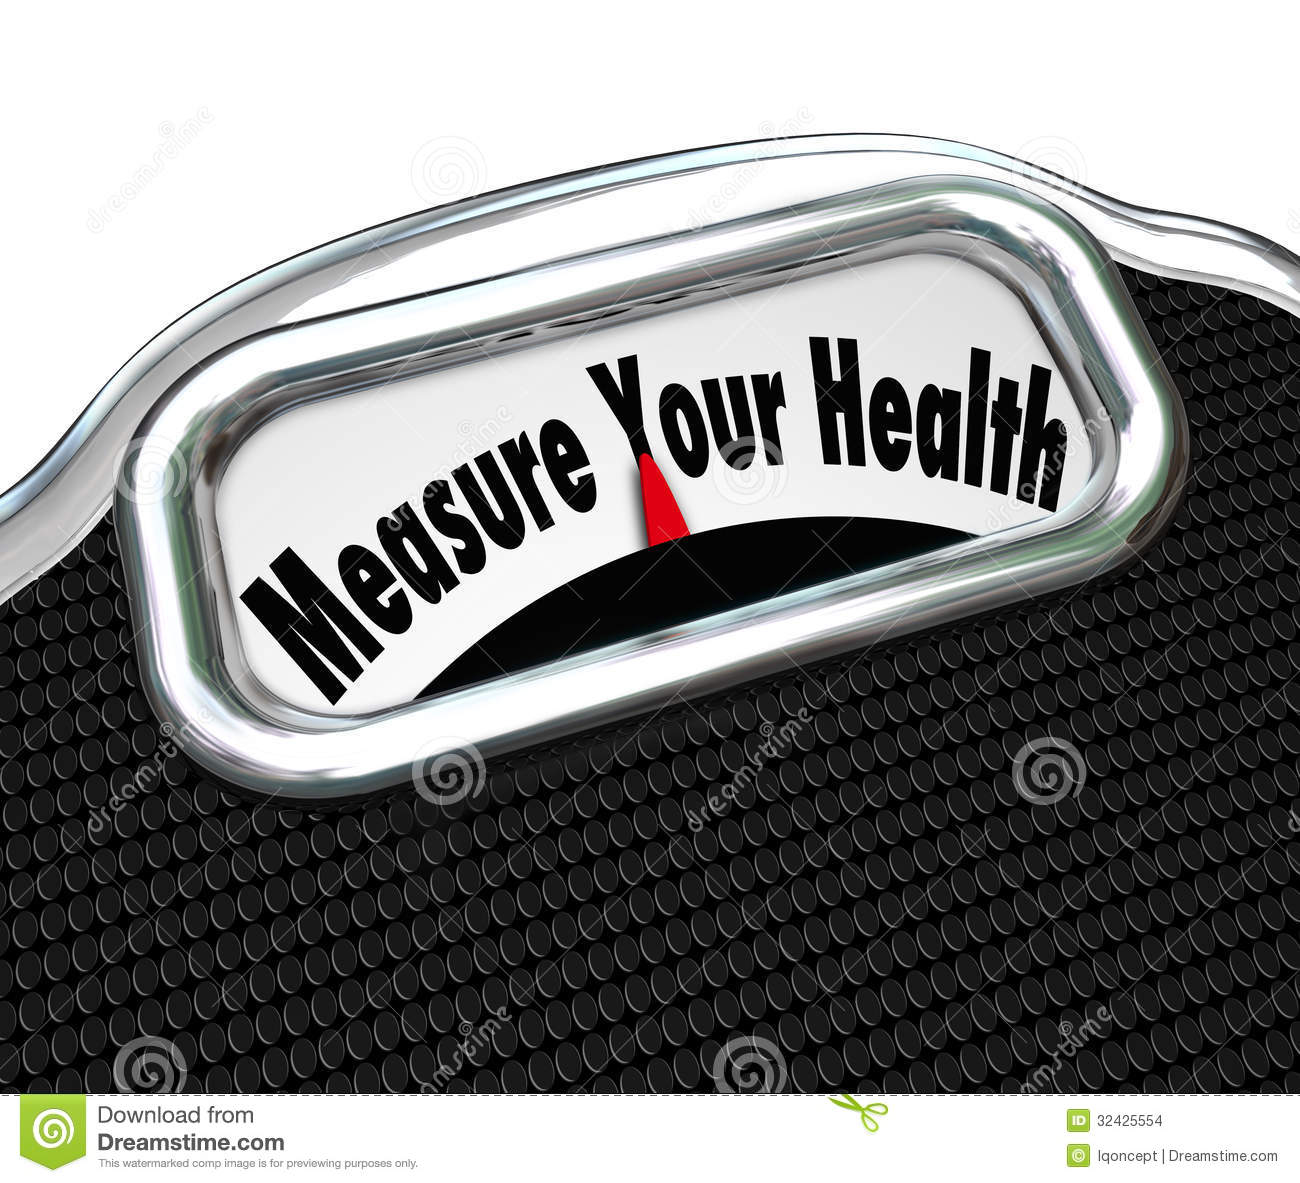 Measure Your Health Scale Weight Loss Healthy Checkup